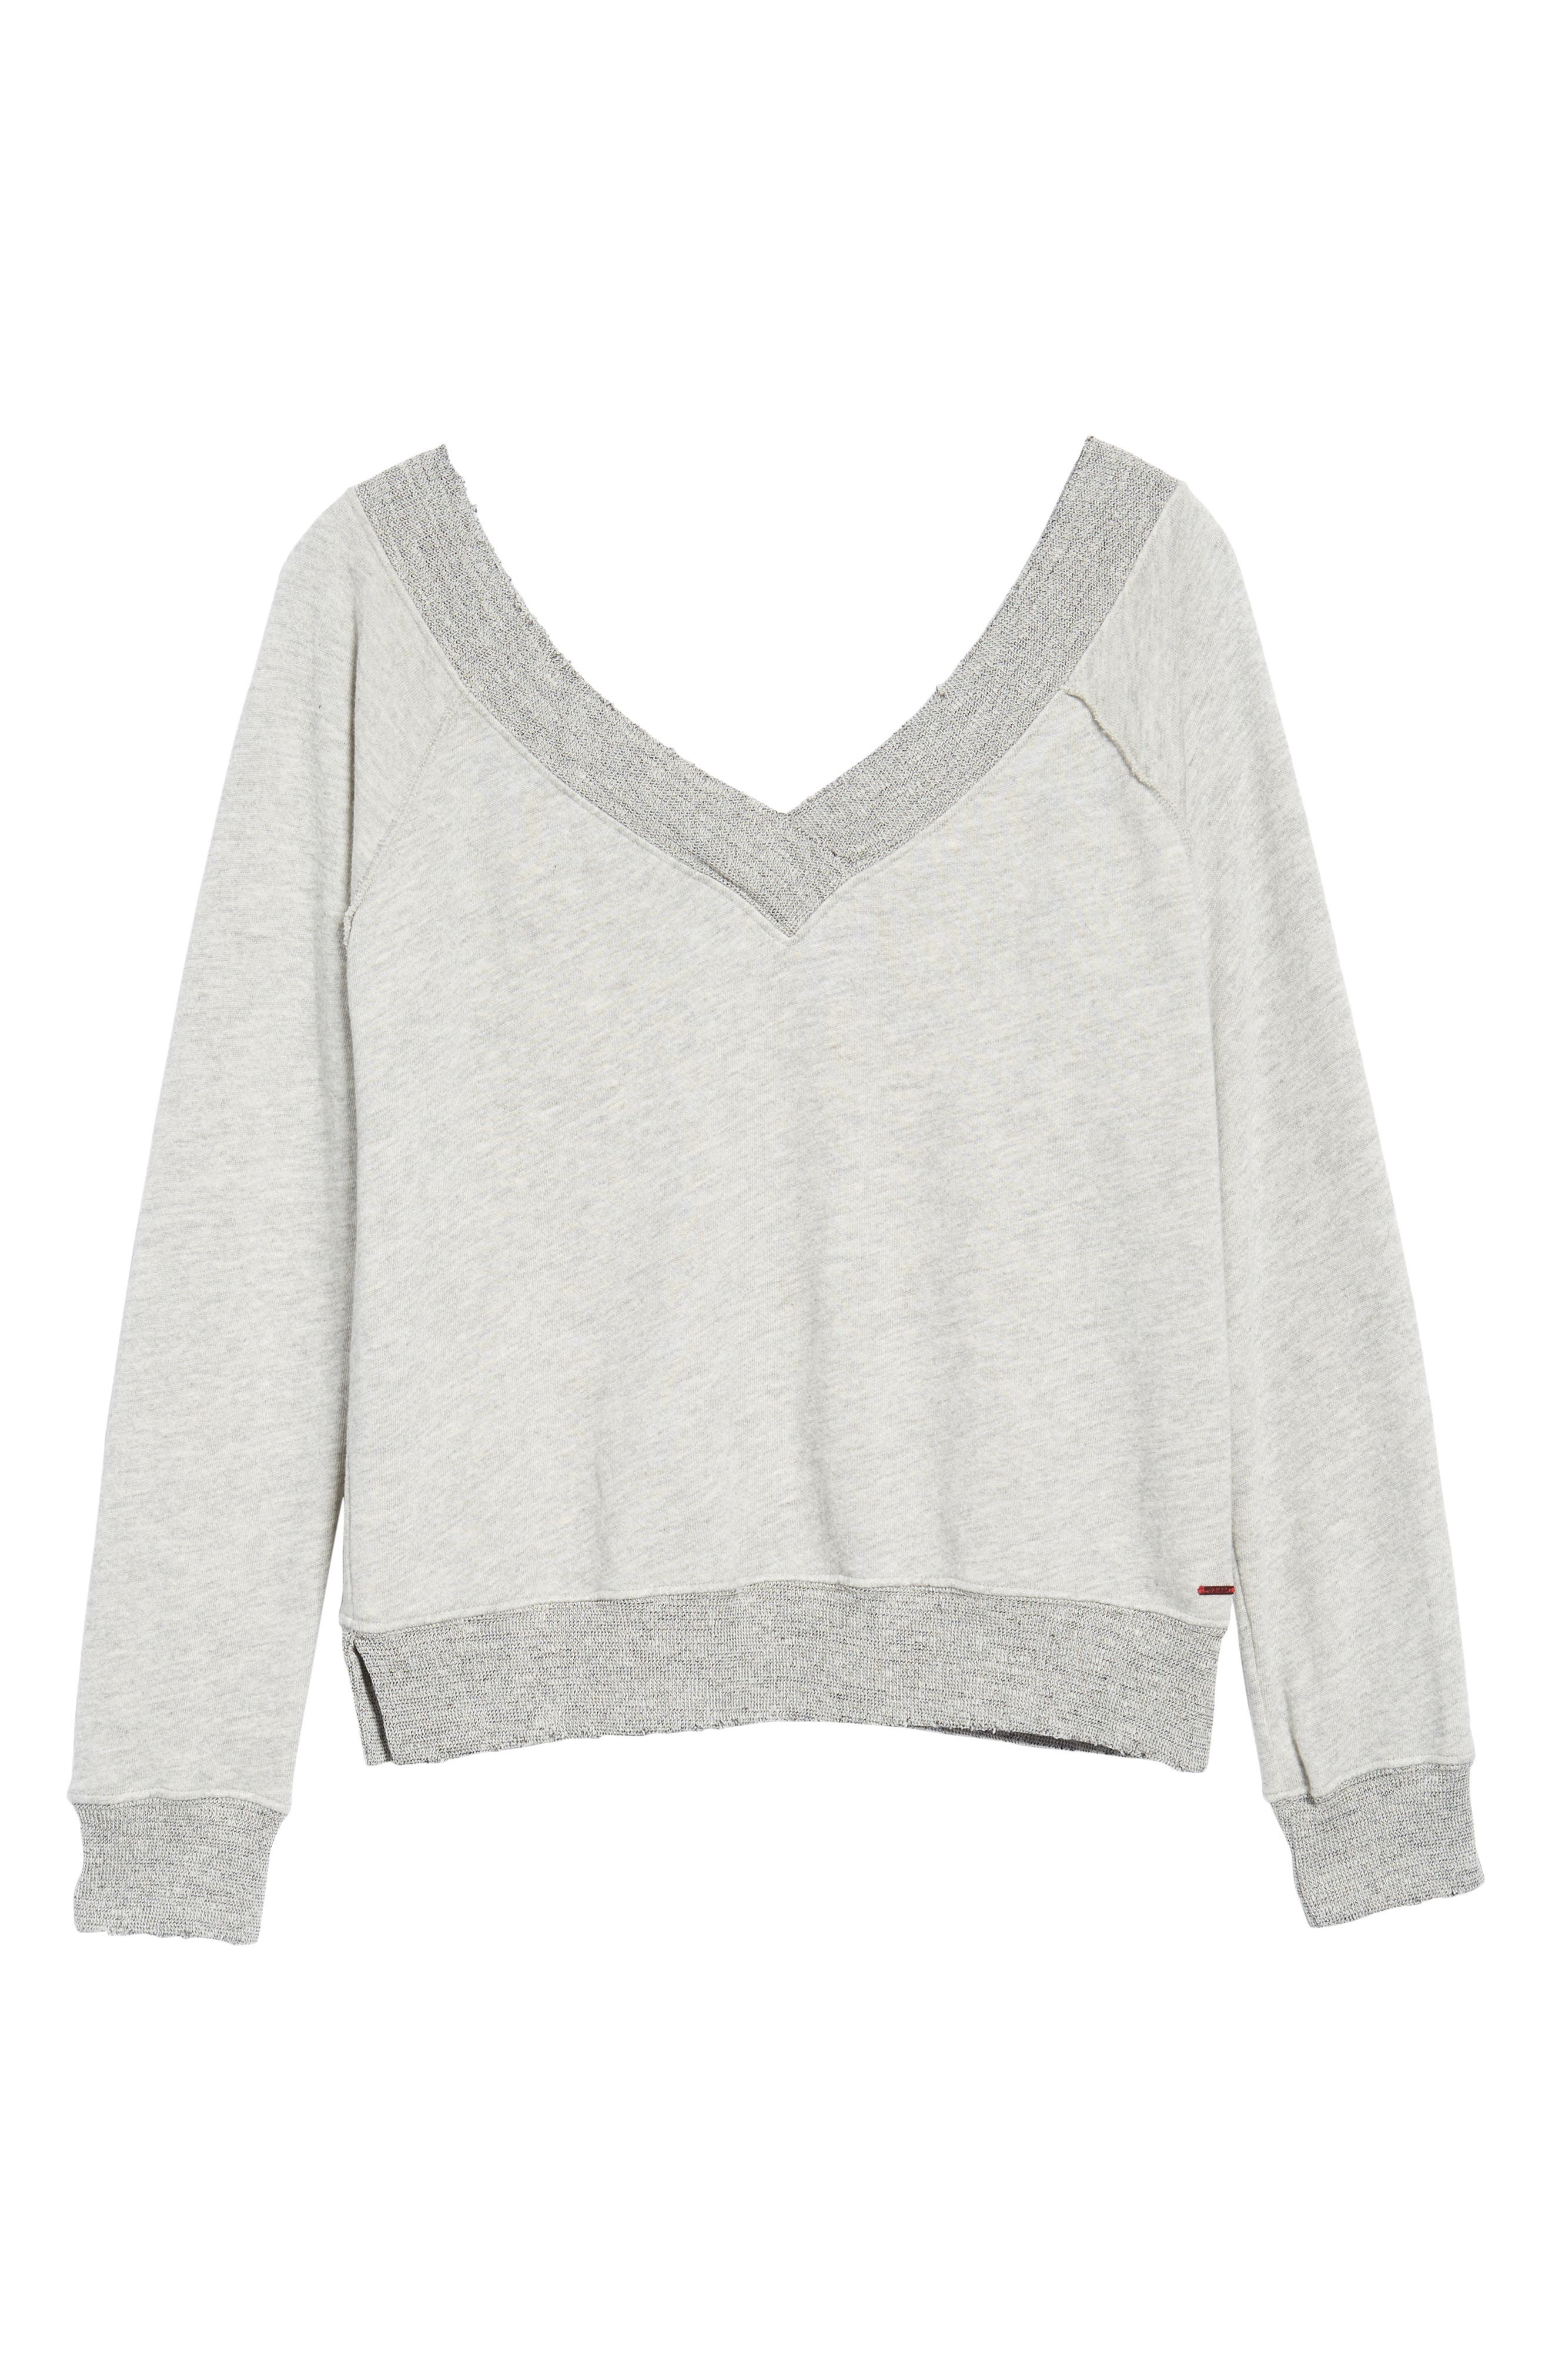 Mayer V-Neck Sweatshirt,                             Alternate thumbnail 6, color,                             002